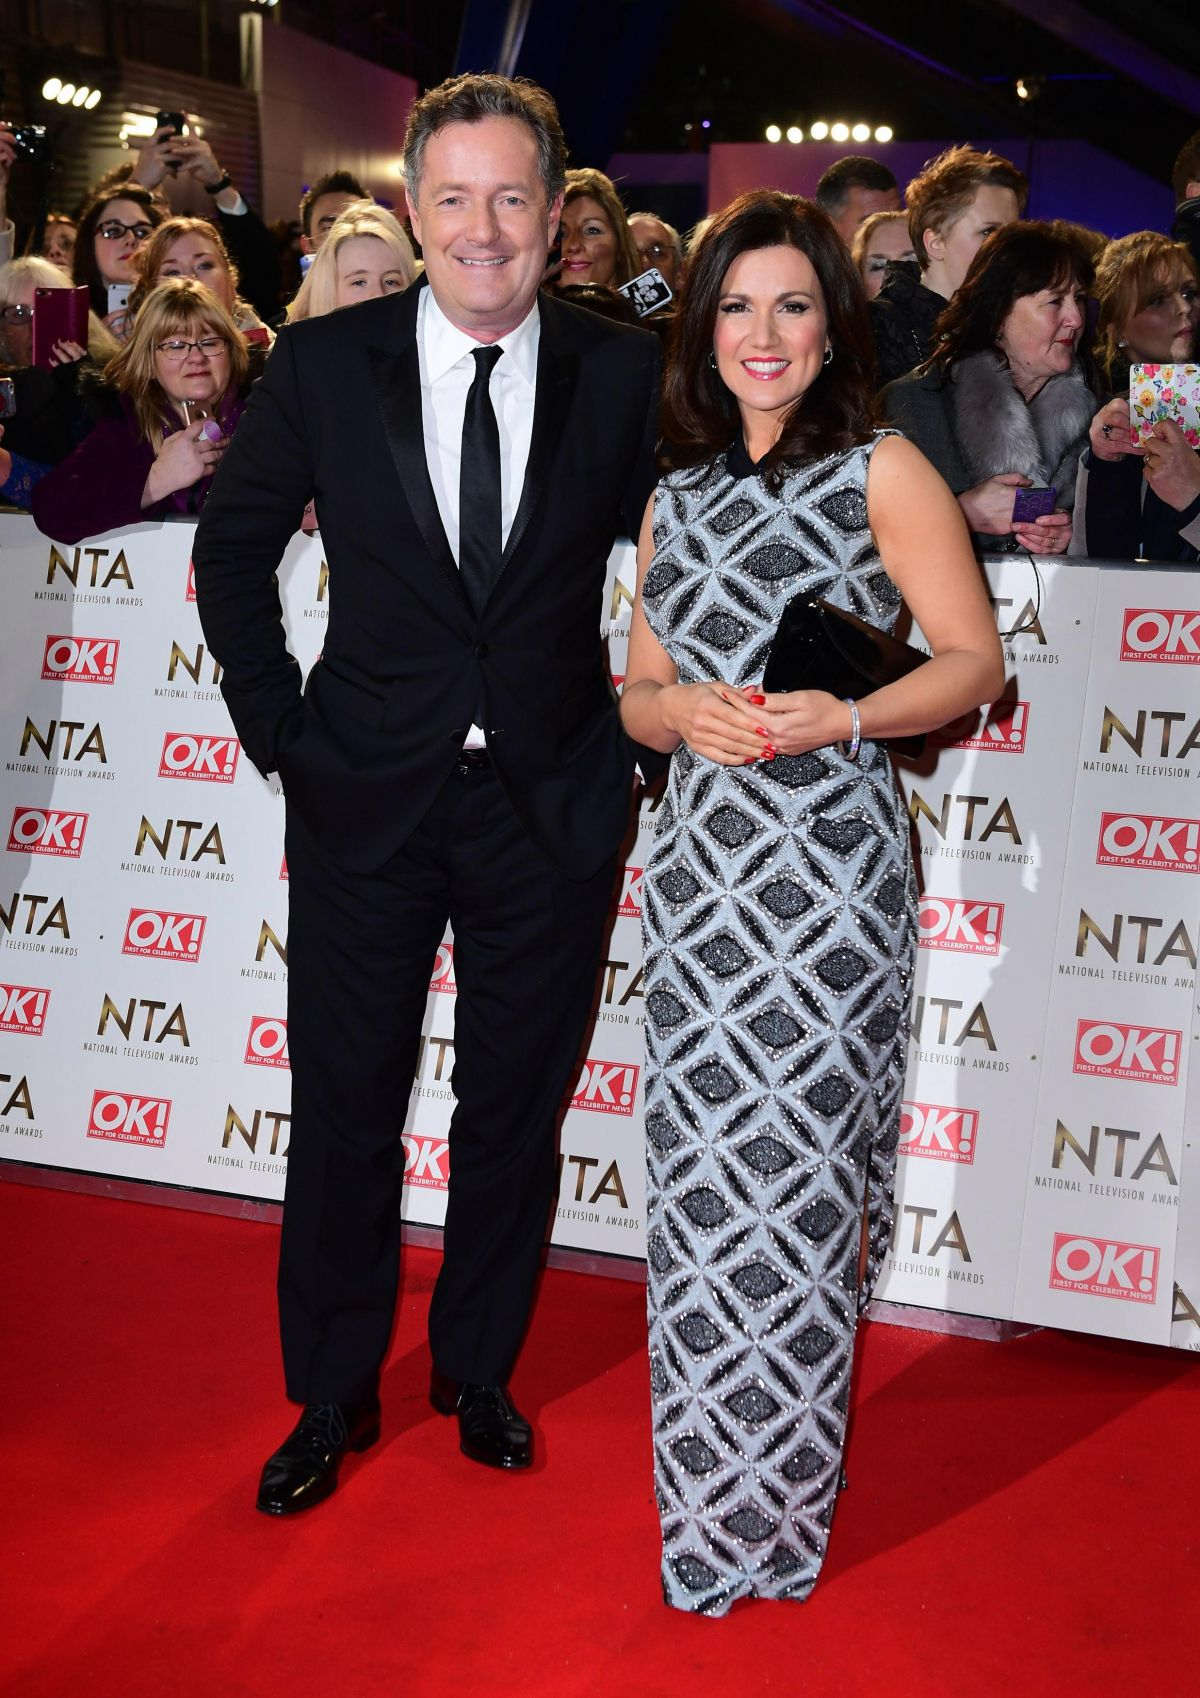 SUSANNA REID at National Television Awards in London 01/25/2017